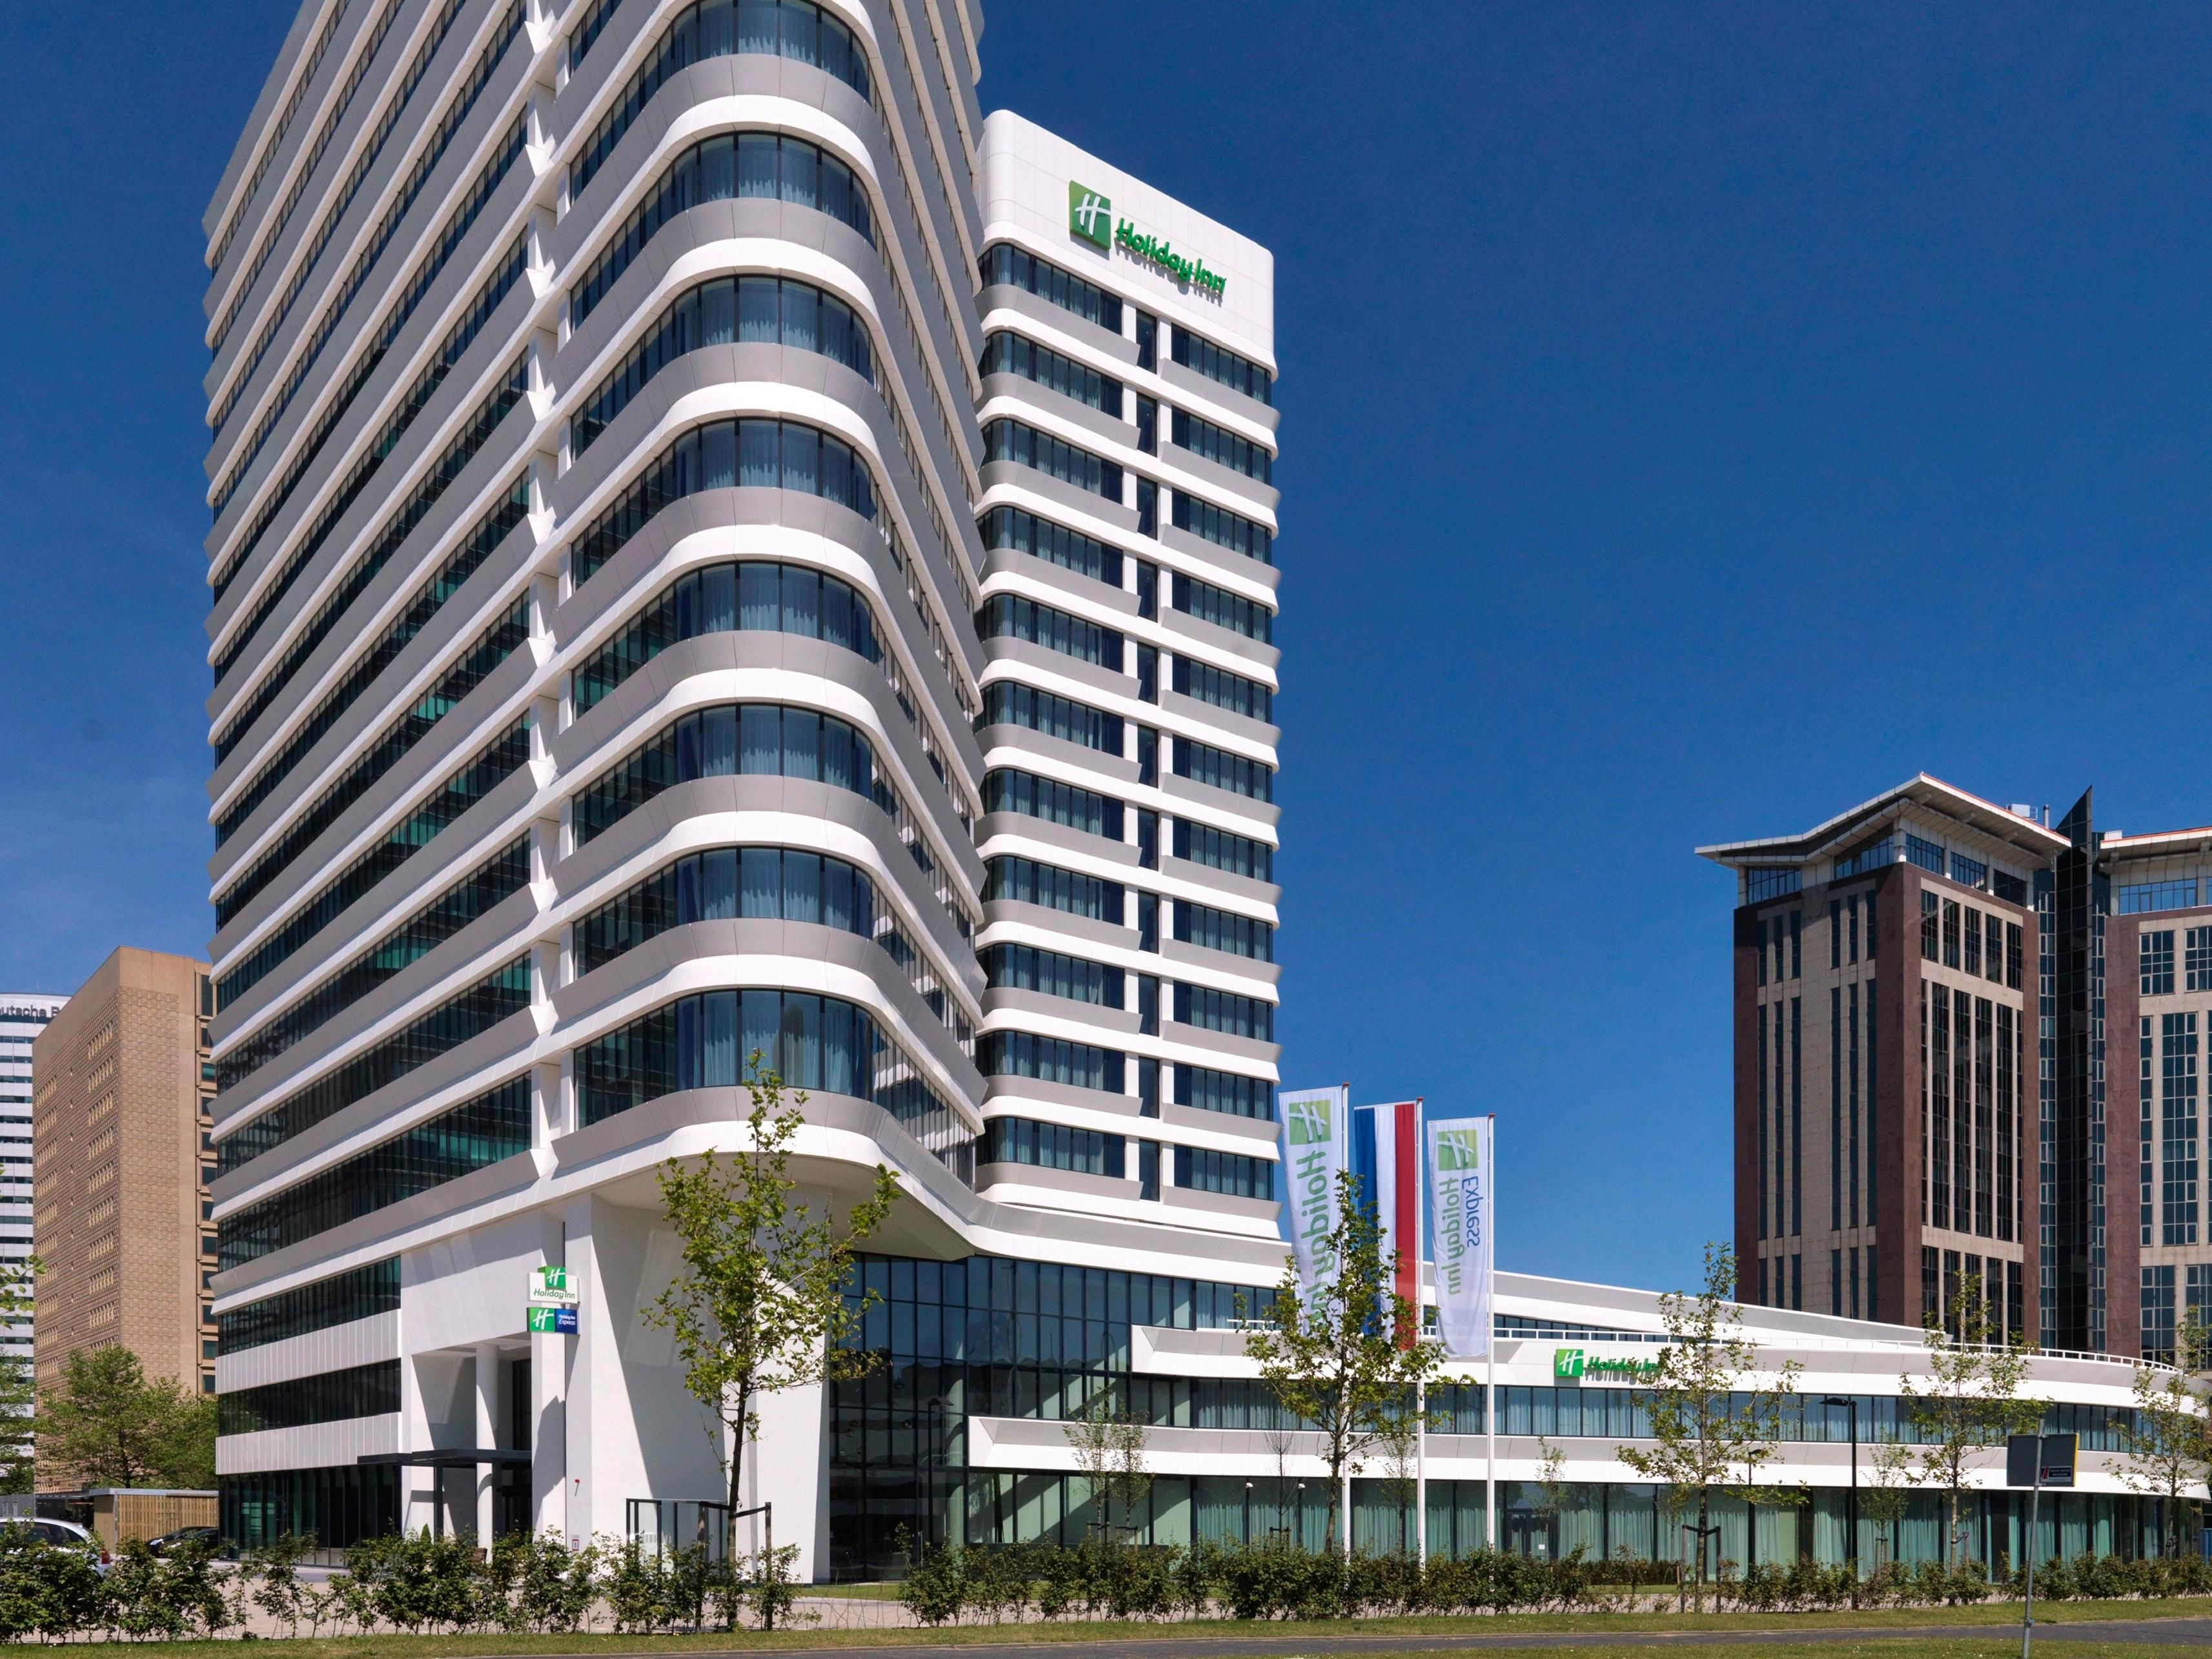 Welcome to our new Holiday Inn Amsterdam - Arena Towers.